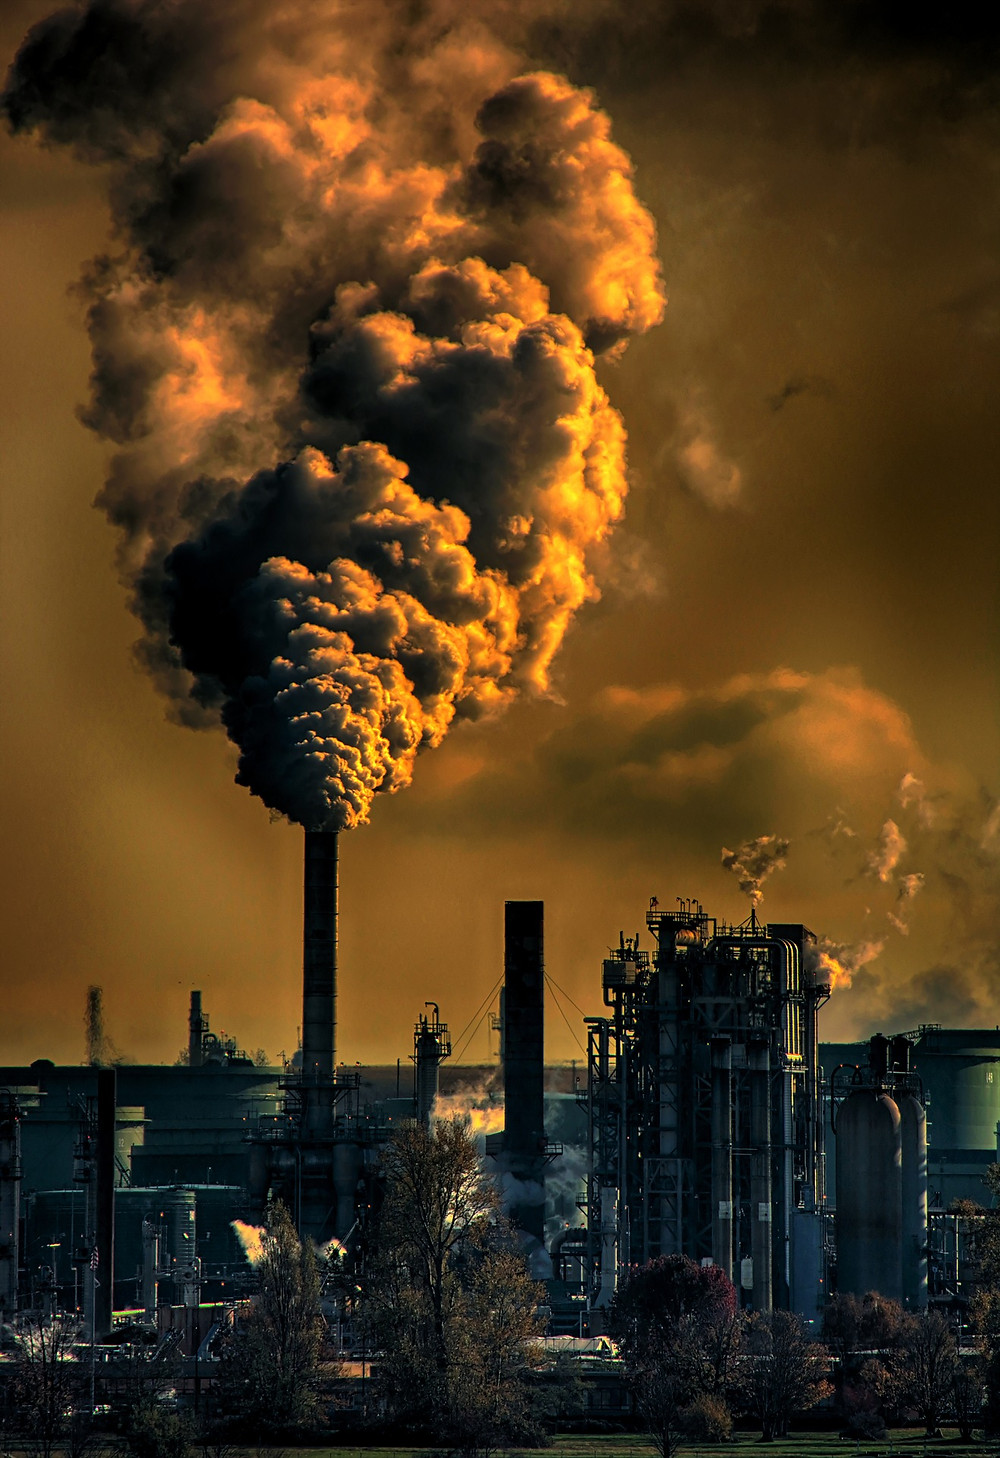 Shows factories releasing pollutants into the air. Air pollution exacerbates skin ageing and causes the development of skin problems like acne.